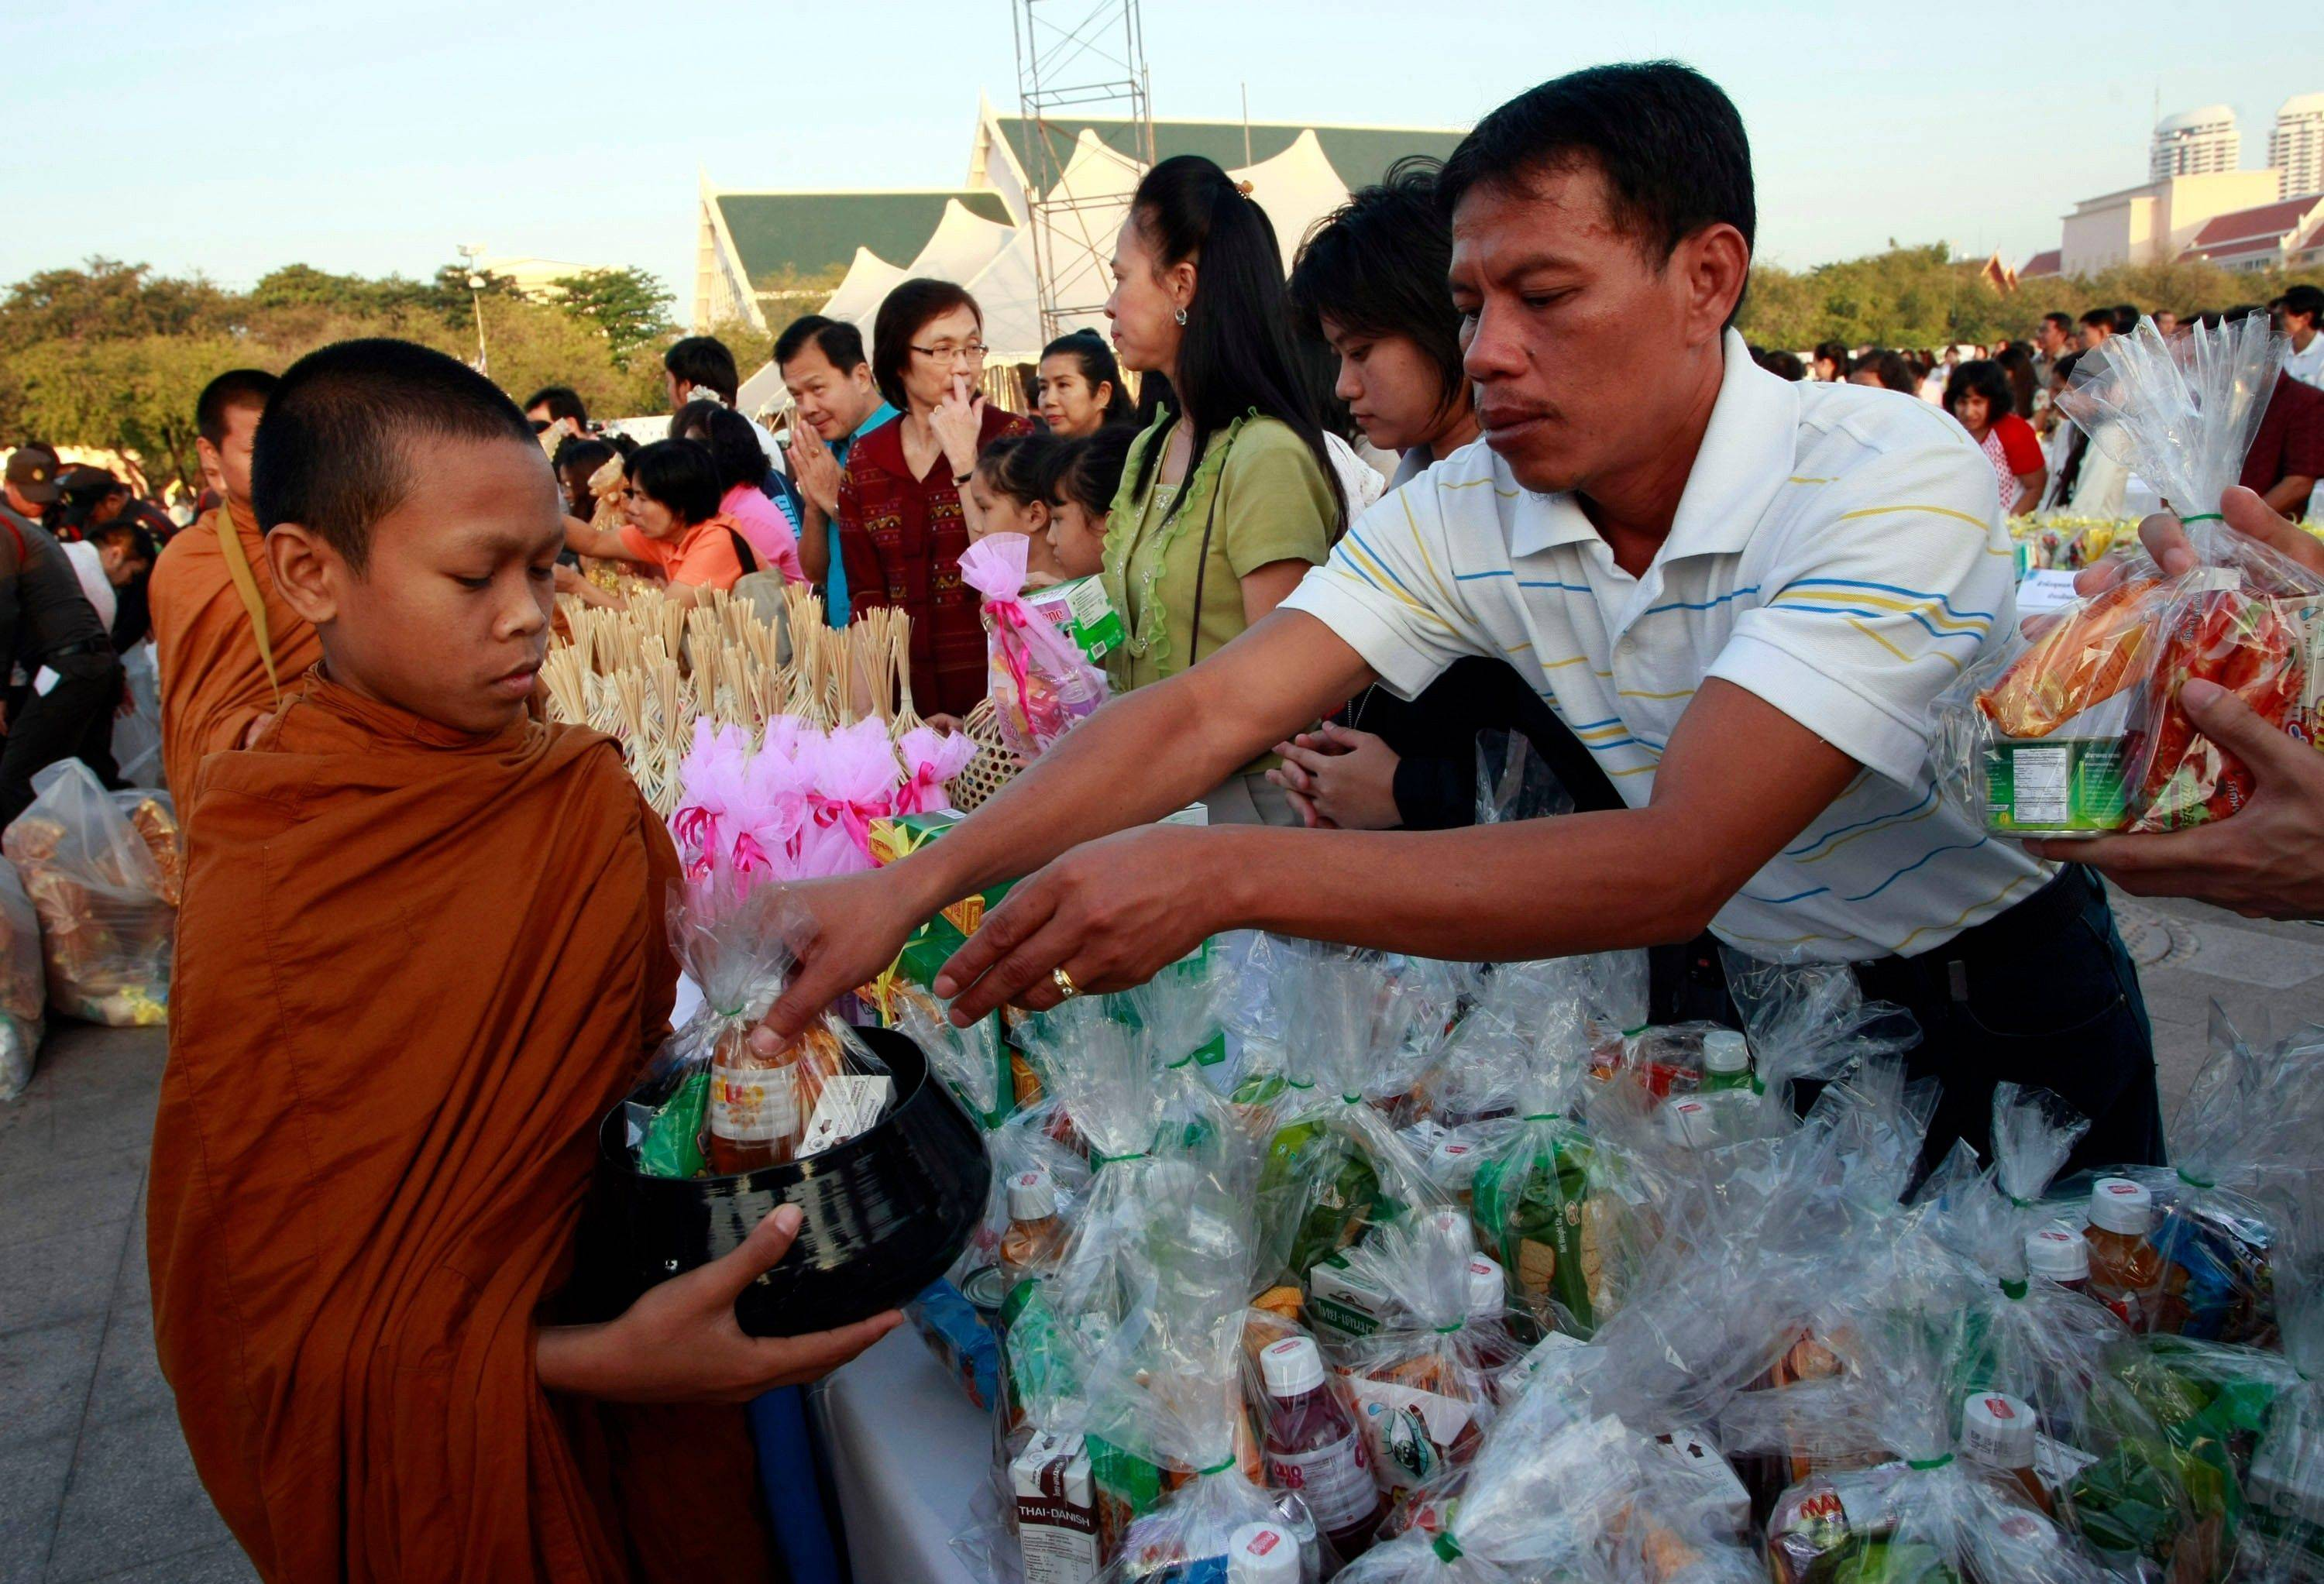 A Buddhist monk takes up alms from Thais during a morning alms offerings, part of New Year's celebrations, Sunday, Jan. 1, 2012 in Bangkok, Thailand.